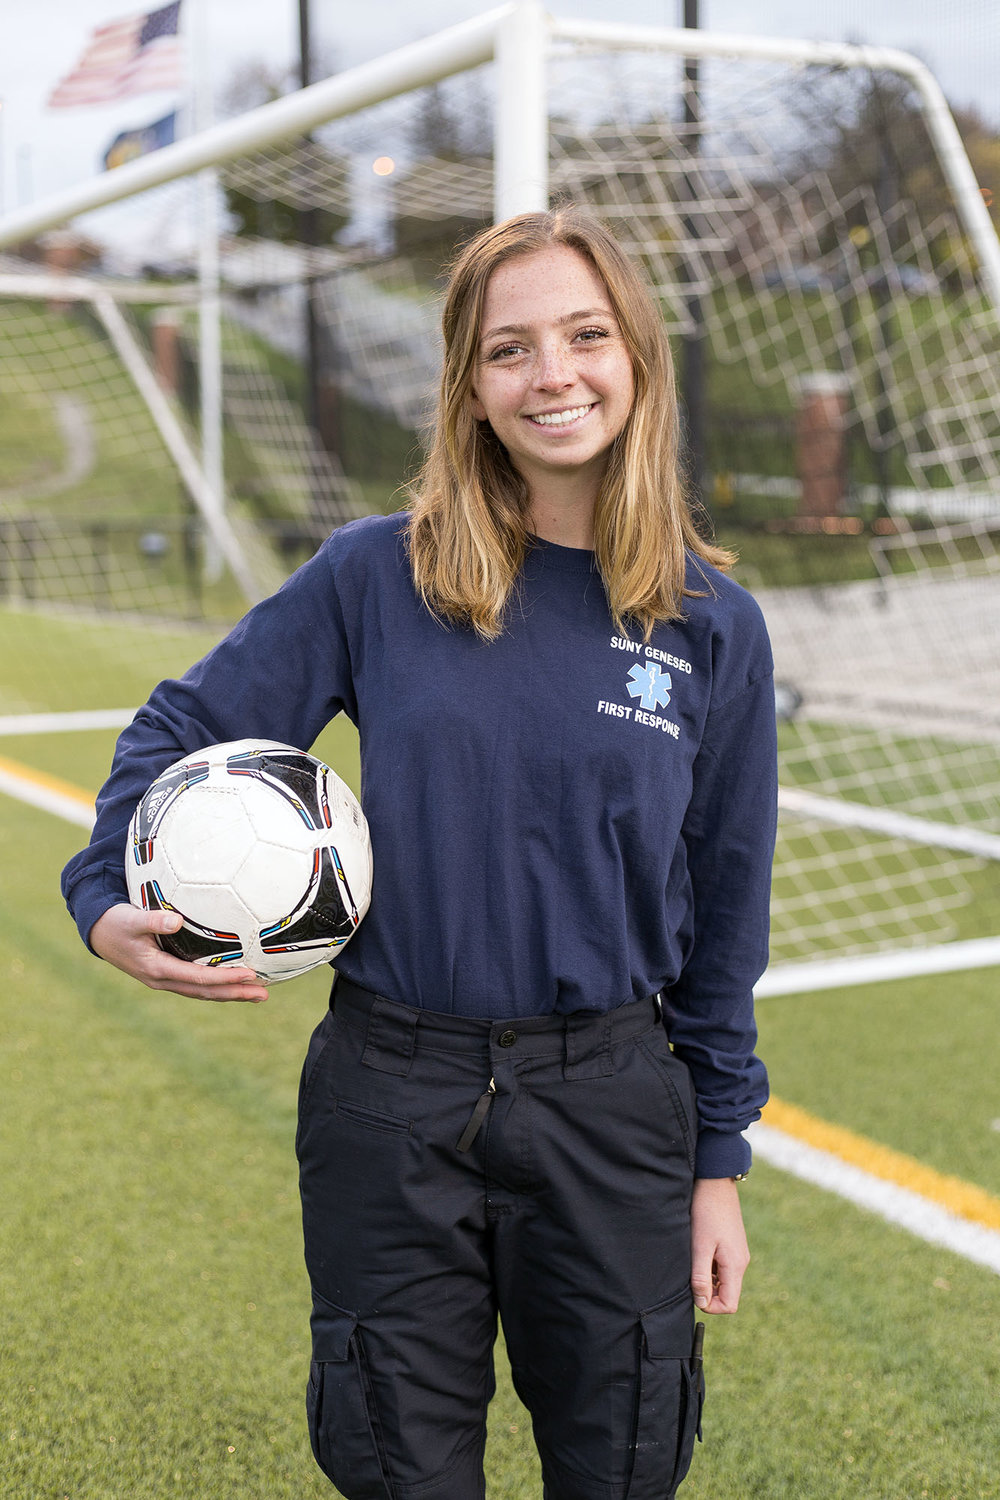 Serving as a Geneseo First Responder and a player on the women's soccer team, junior defender Rachel Walsh has shown her dedication to the campus in a variety of ways. Walsh hopes to use her experiences at Geneseo in a future career as a physician's assistant. (Annalee Bainnson/Photo Editor)